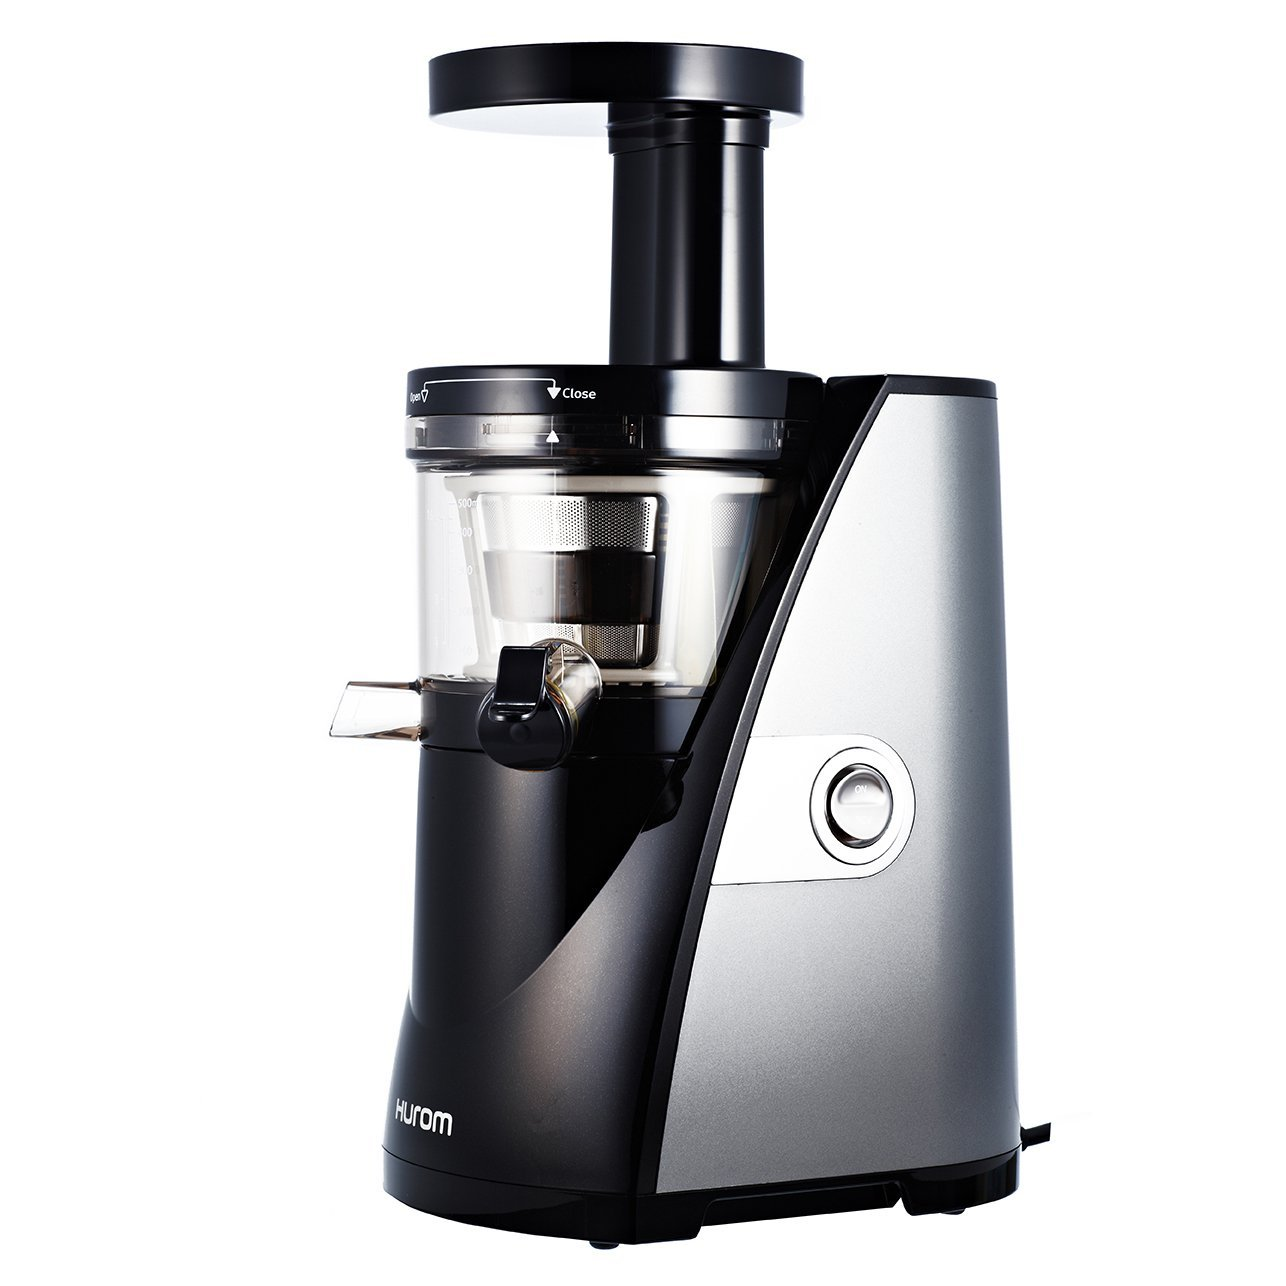 The Best Masticating Juicer Reviews : 5 Best Hurom Juicer Reviews UPDATED: 2018 The Home Savant